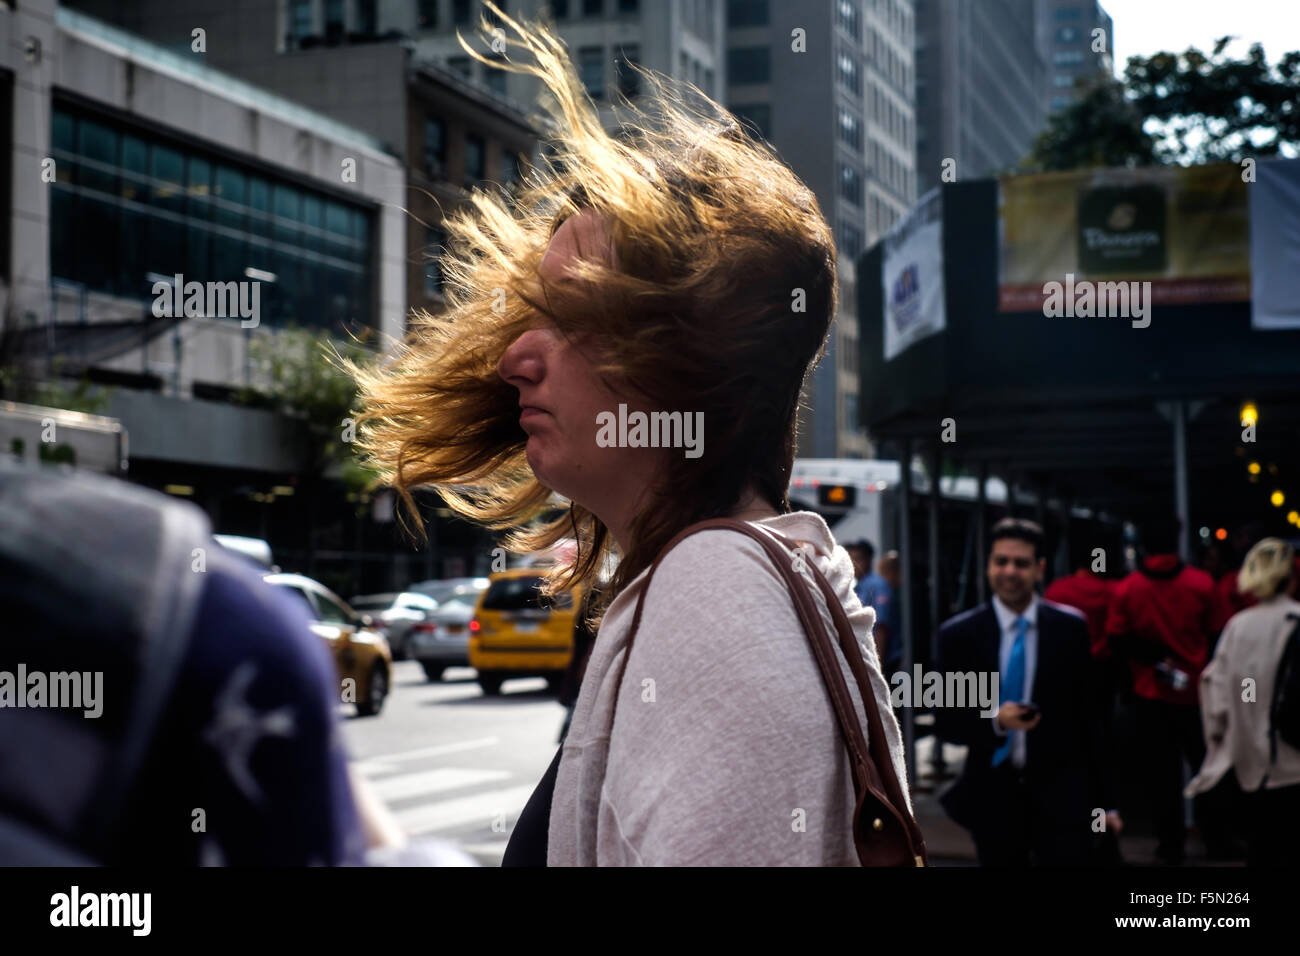 New York City, New York, USA.  November 11, 2015:  A strong wind blows a woman's hair over her face. - Stock Image